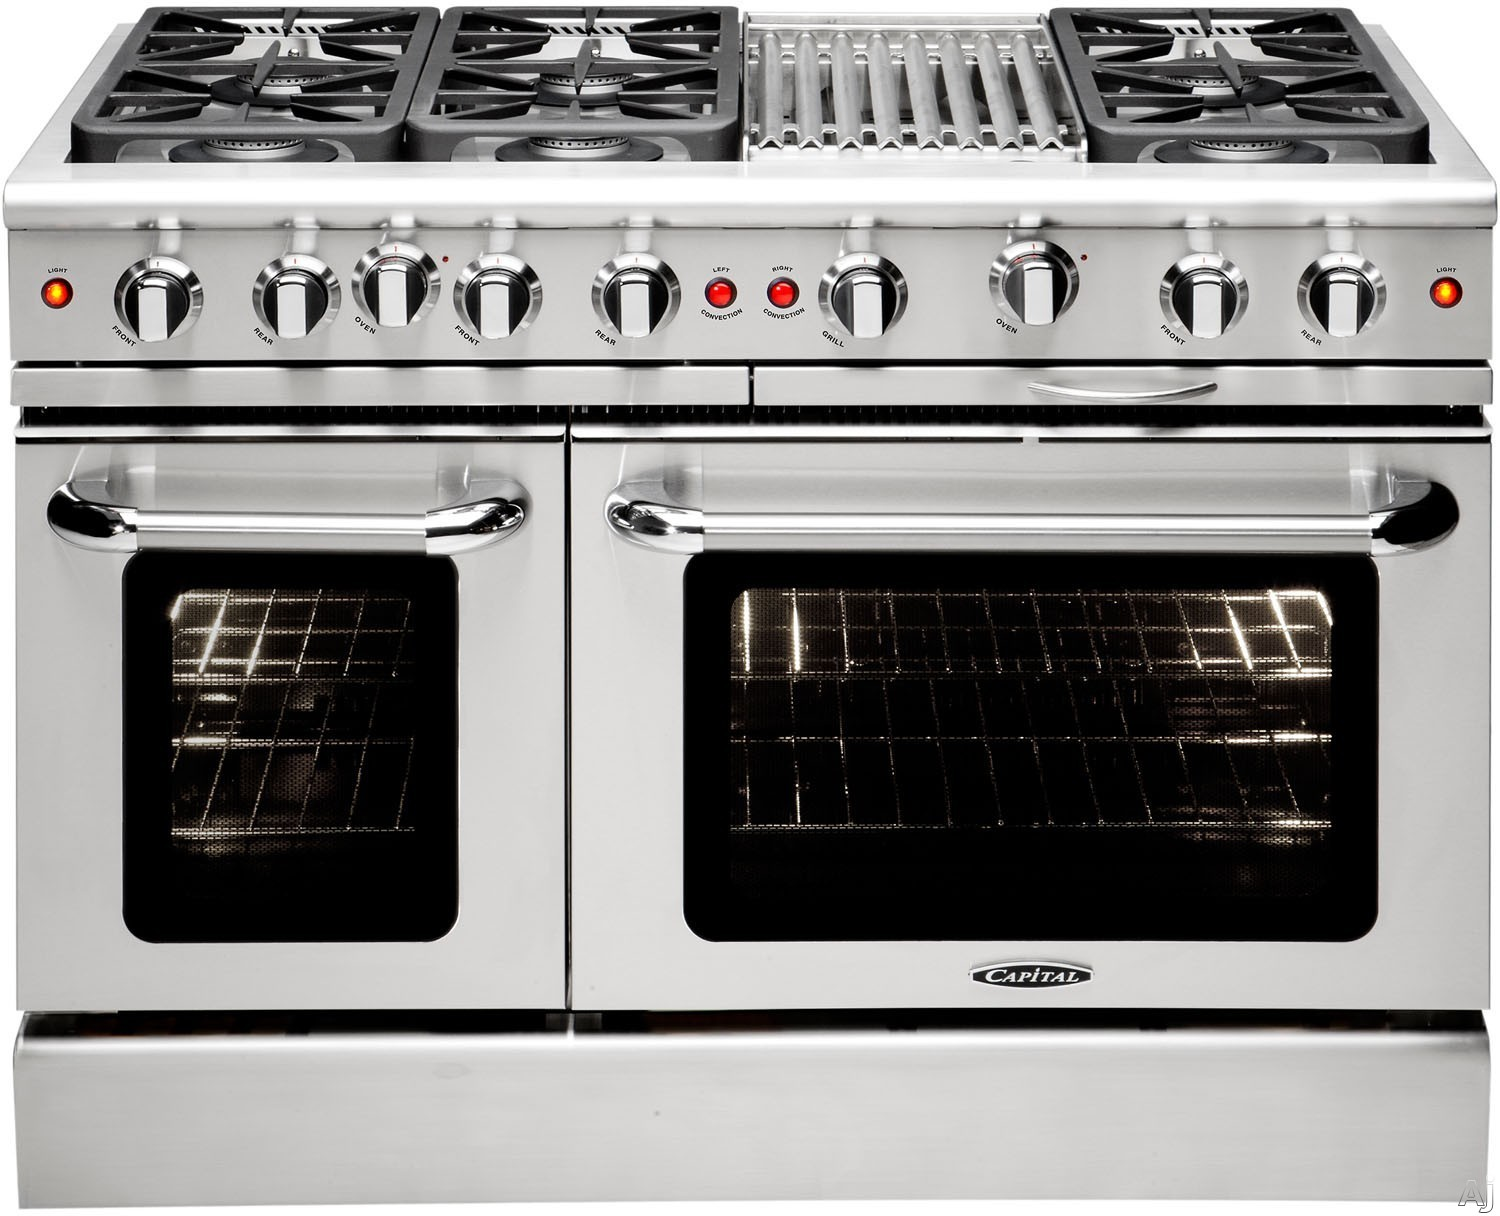 Capital Precision Series MCR486B 48 Inch Freestanding Gas Range with 6 Sealed Burners, 19,000 BTU, 4.9 cu. ft. Oven, 30,000 BTU Oven Bake, Hybrid Radiant BBQ Grill, Interior Oven Light and Continuous